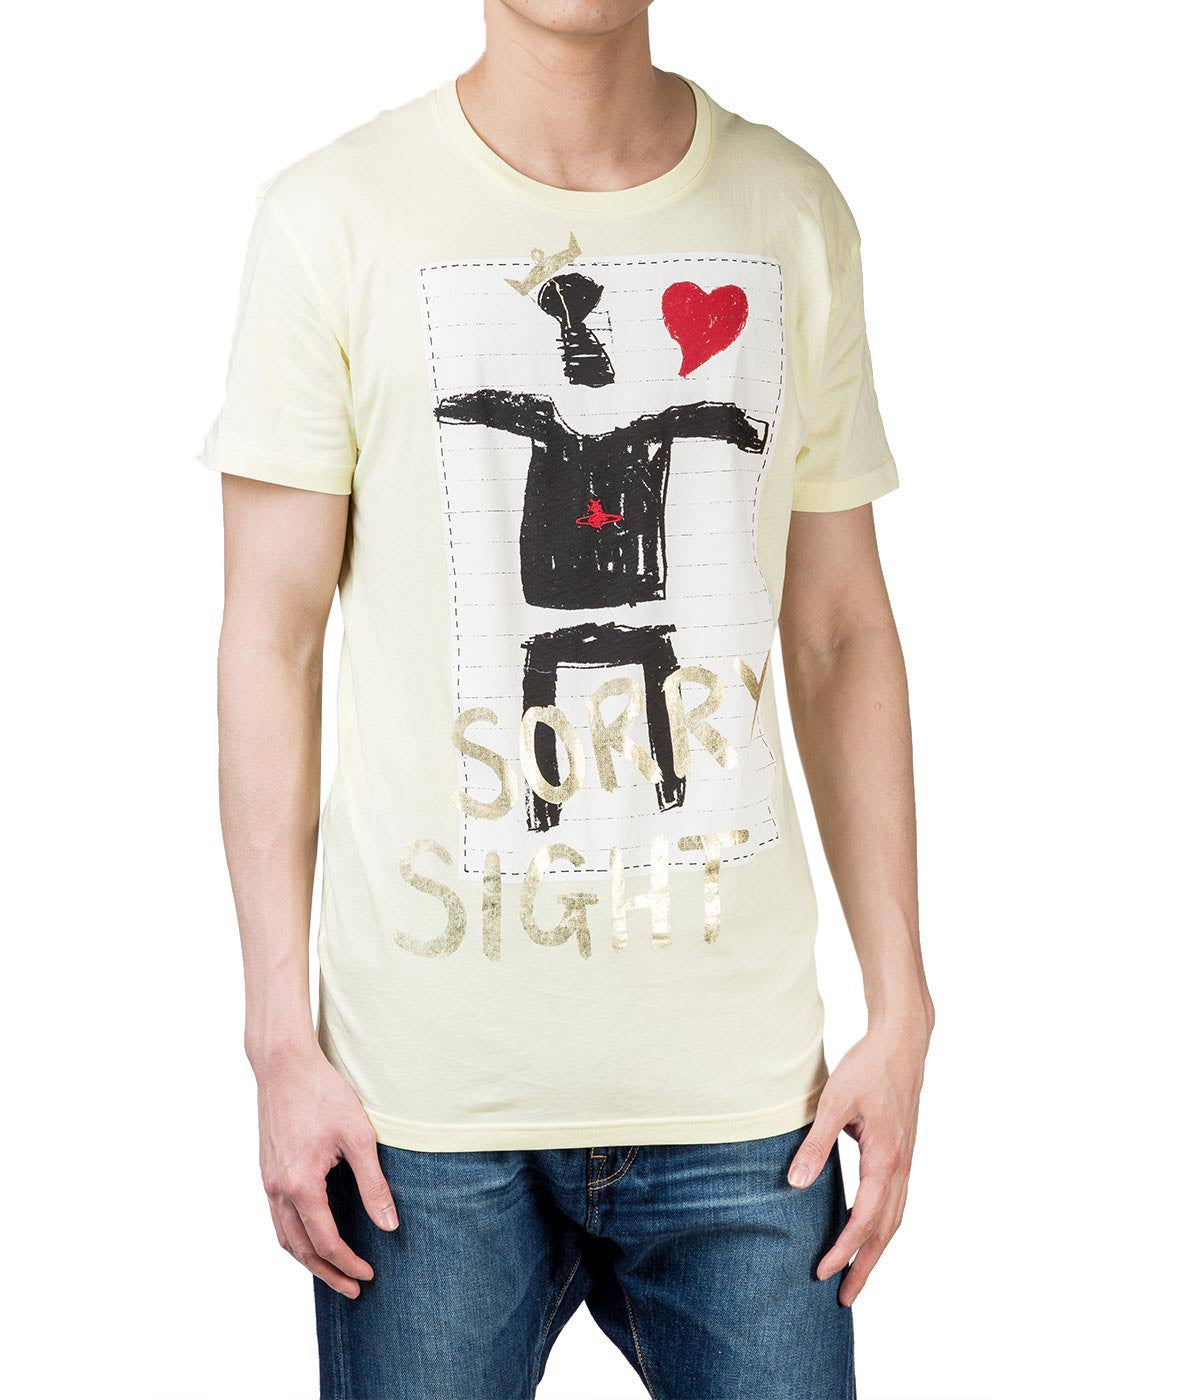 King Heart T-Shirt